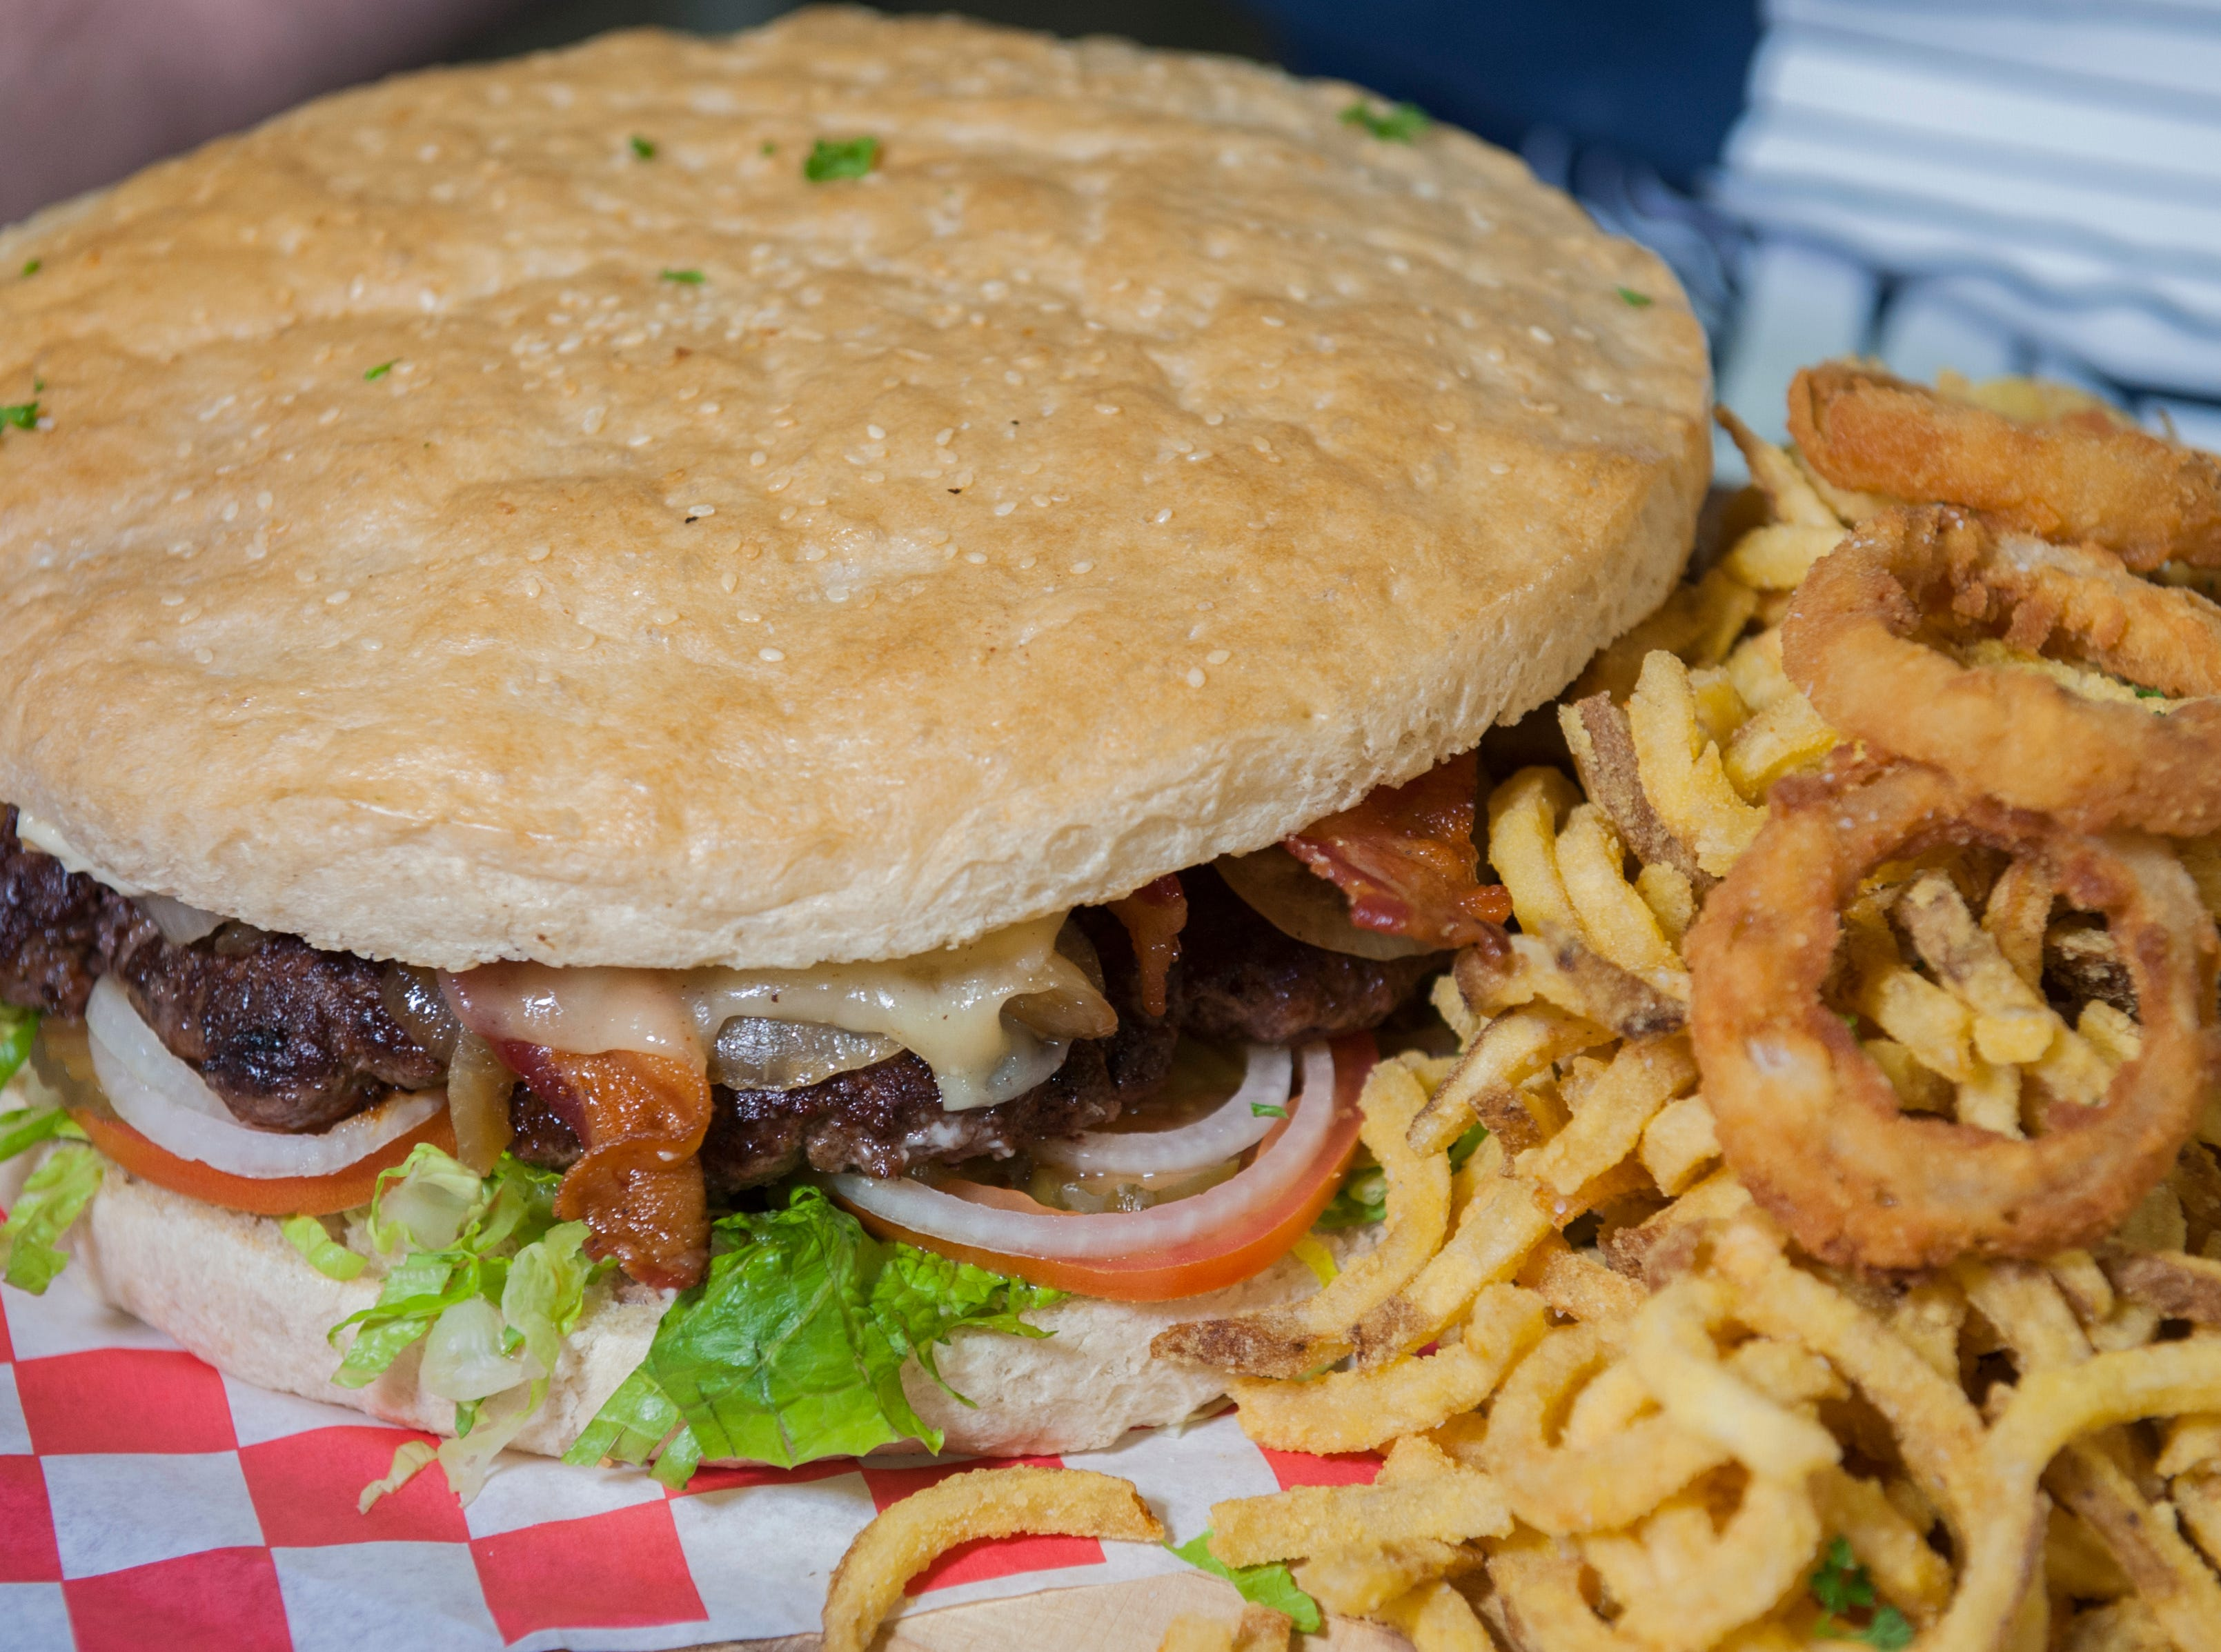 Big Eater Mike of Brandon won Rooster's first Stupid Burger Challenge. Are you up for the challenge? Check it out at the Fondren restaurant in Jackson, Miss.